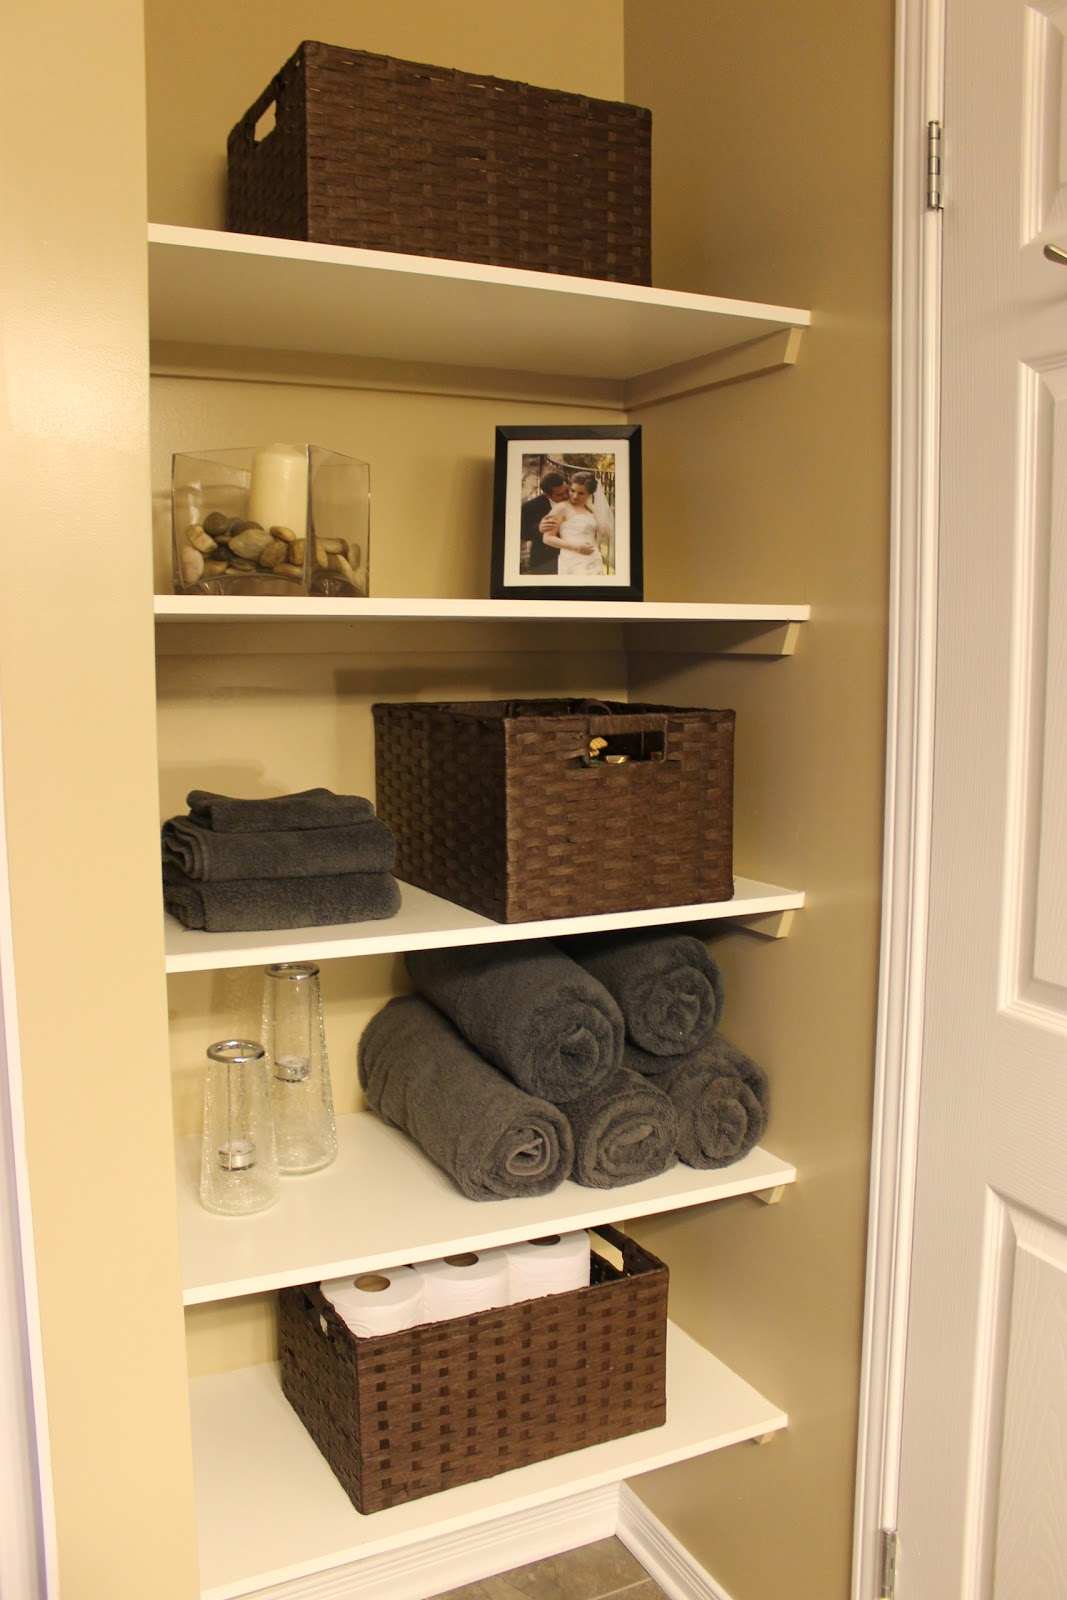 KM Decor DIY Organizing Open Shelving In A Bathroom